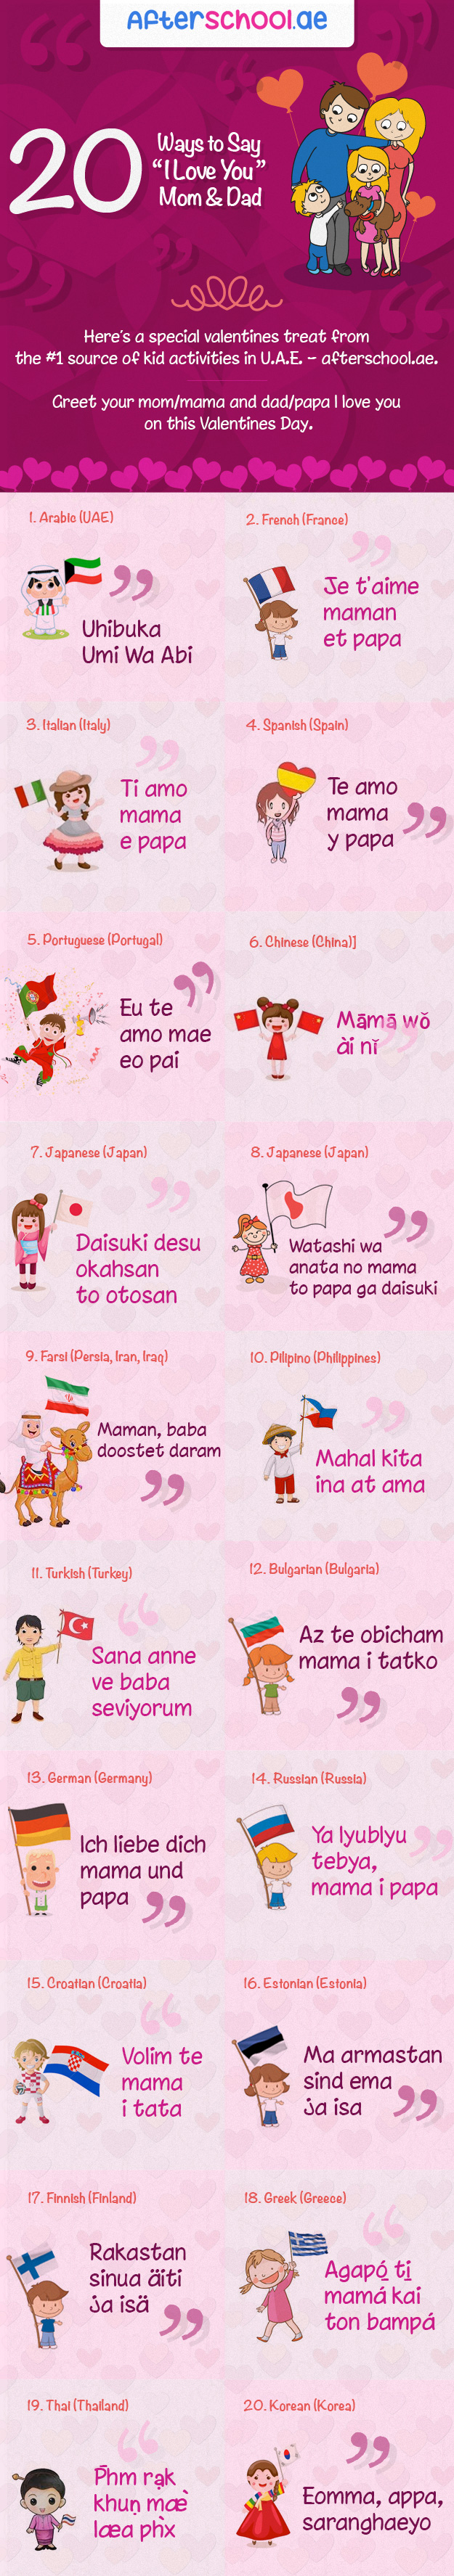 20 ways to say i love you mom dad this valentines infographic visually